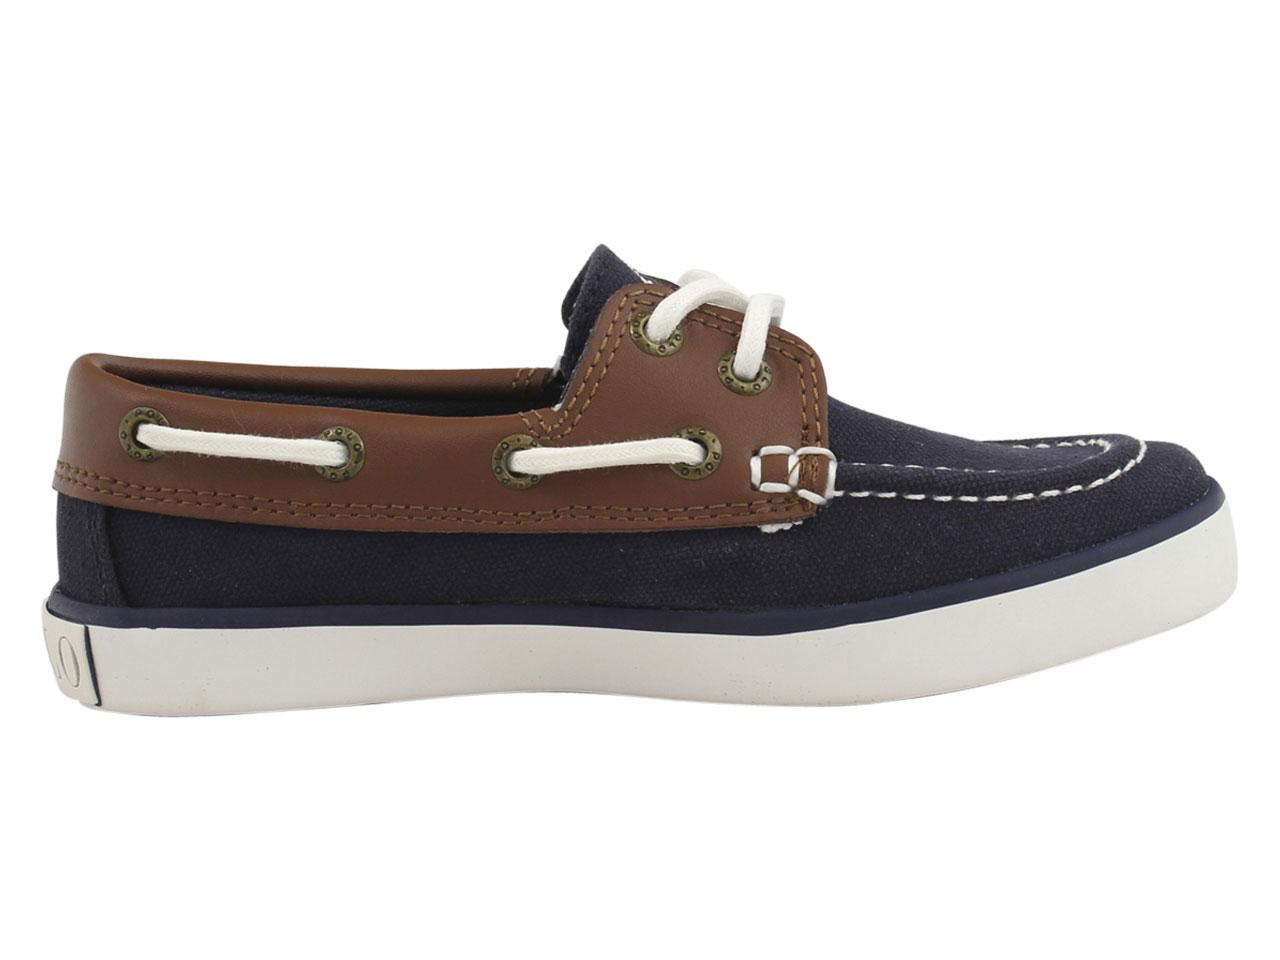 ... Sander-CL Loafers Boat Shoes by Polo Ralph Lauren. 1234567